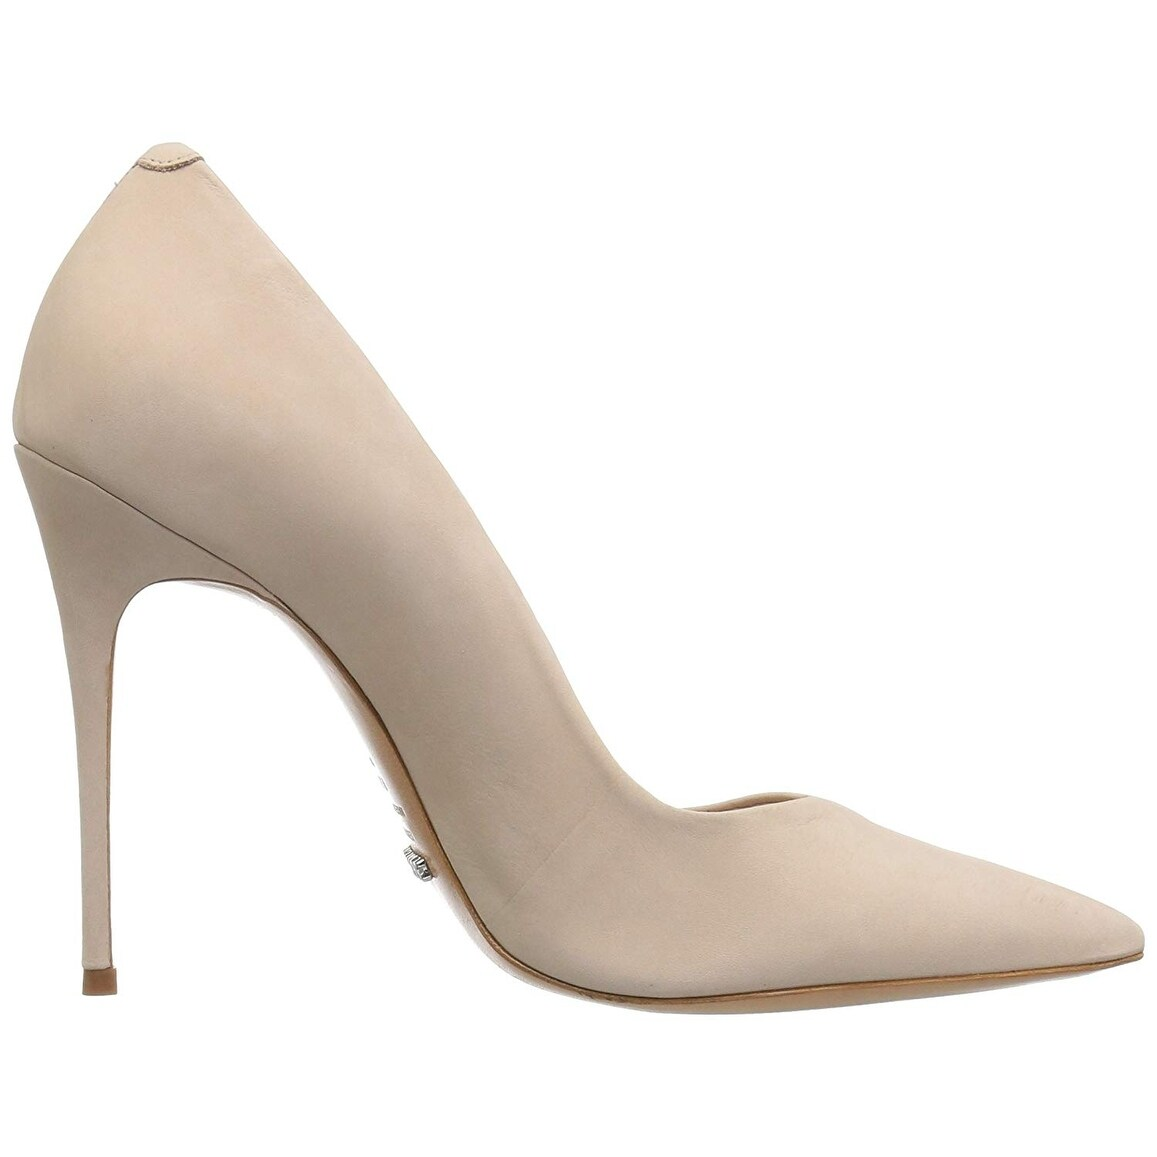 94040b77bda5 Shop SCHUTZ Womens barla Closed Toe Classic Pumps - 7.5 - Free Shipping  Today - Overstock.com - 23125879